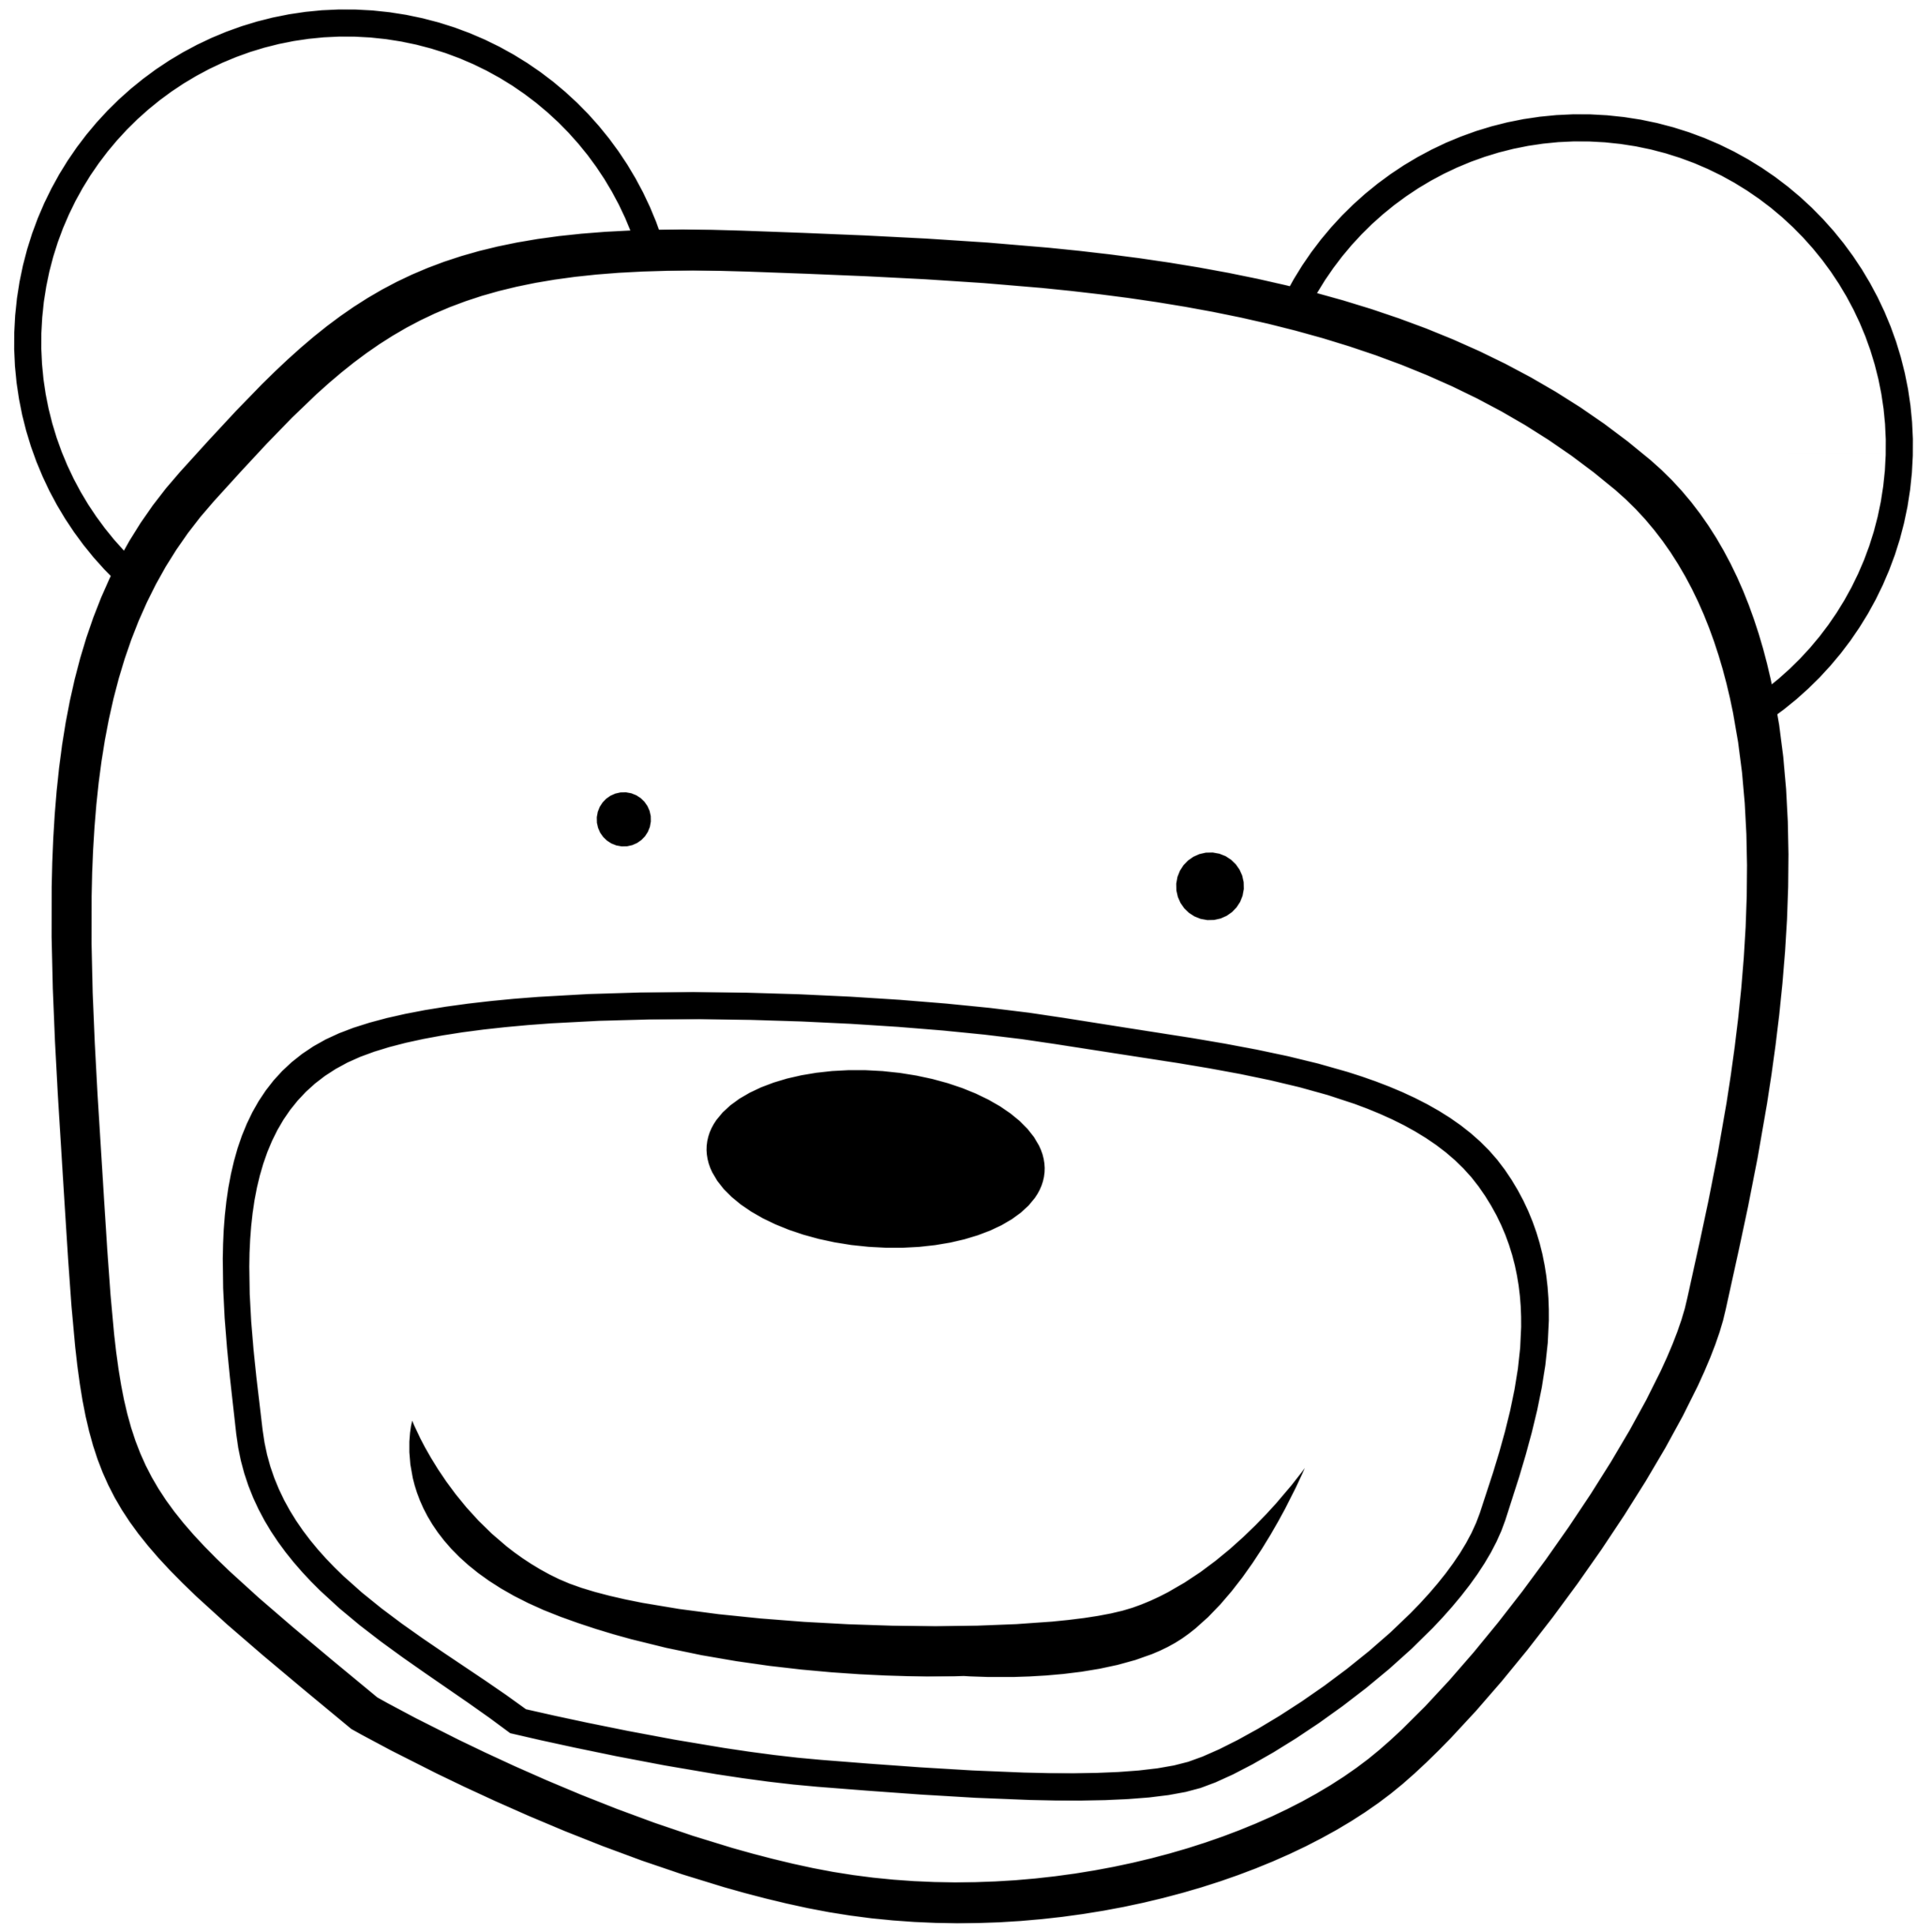 Bear face clipart black and white graphic freeuse Black And White Bear Clipart | Free download best Black And White ... graphic freeuse